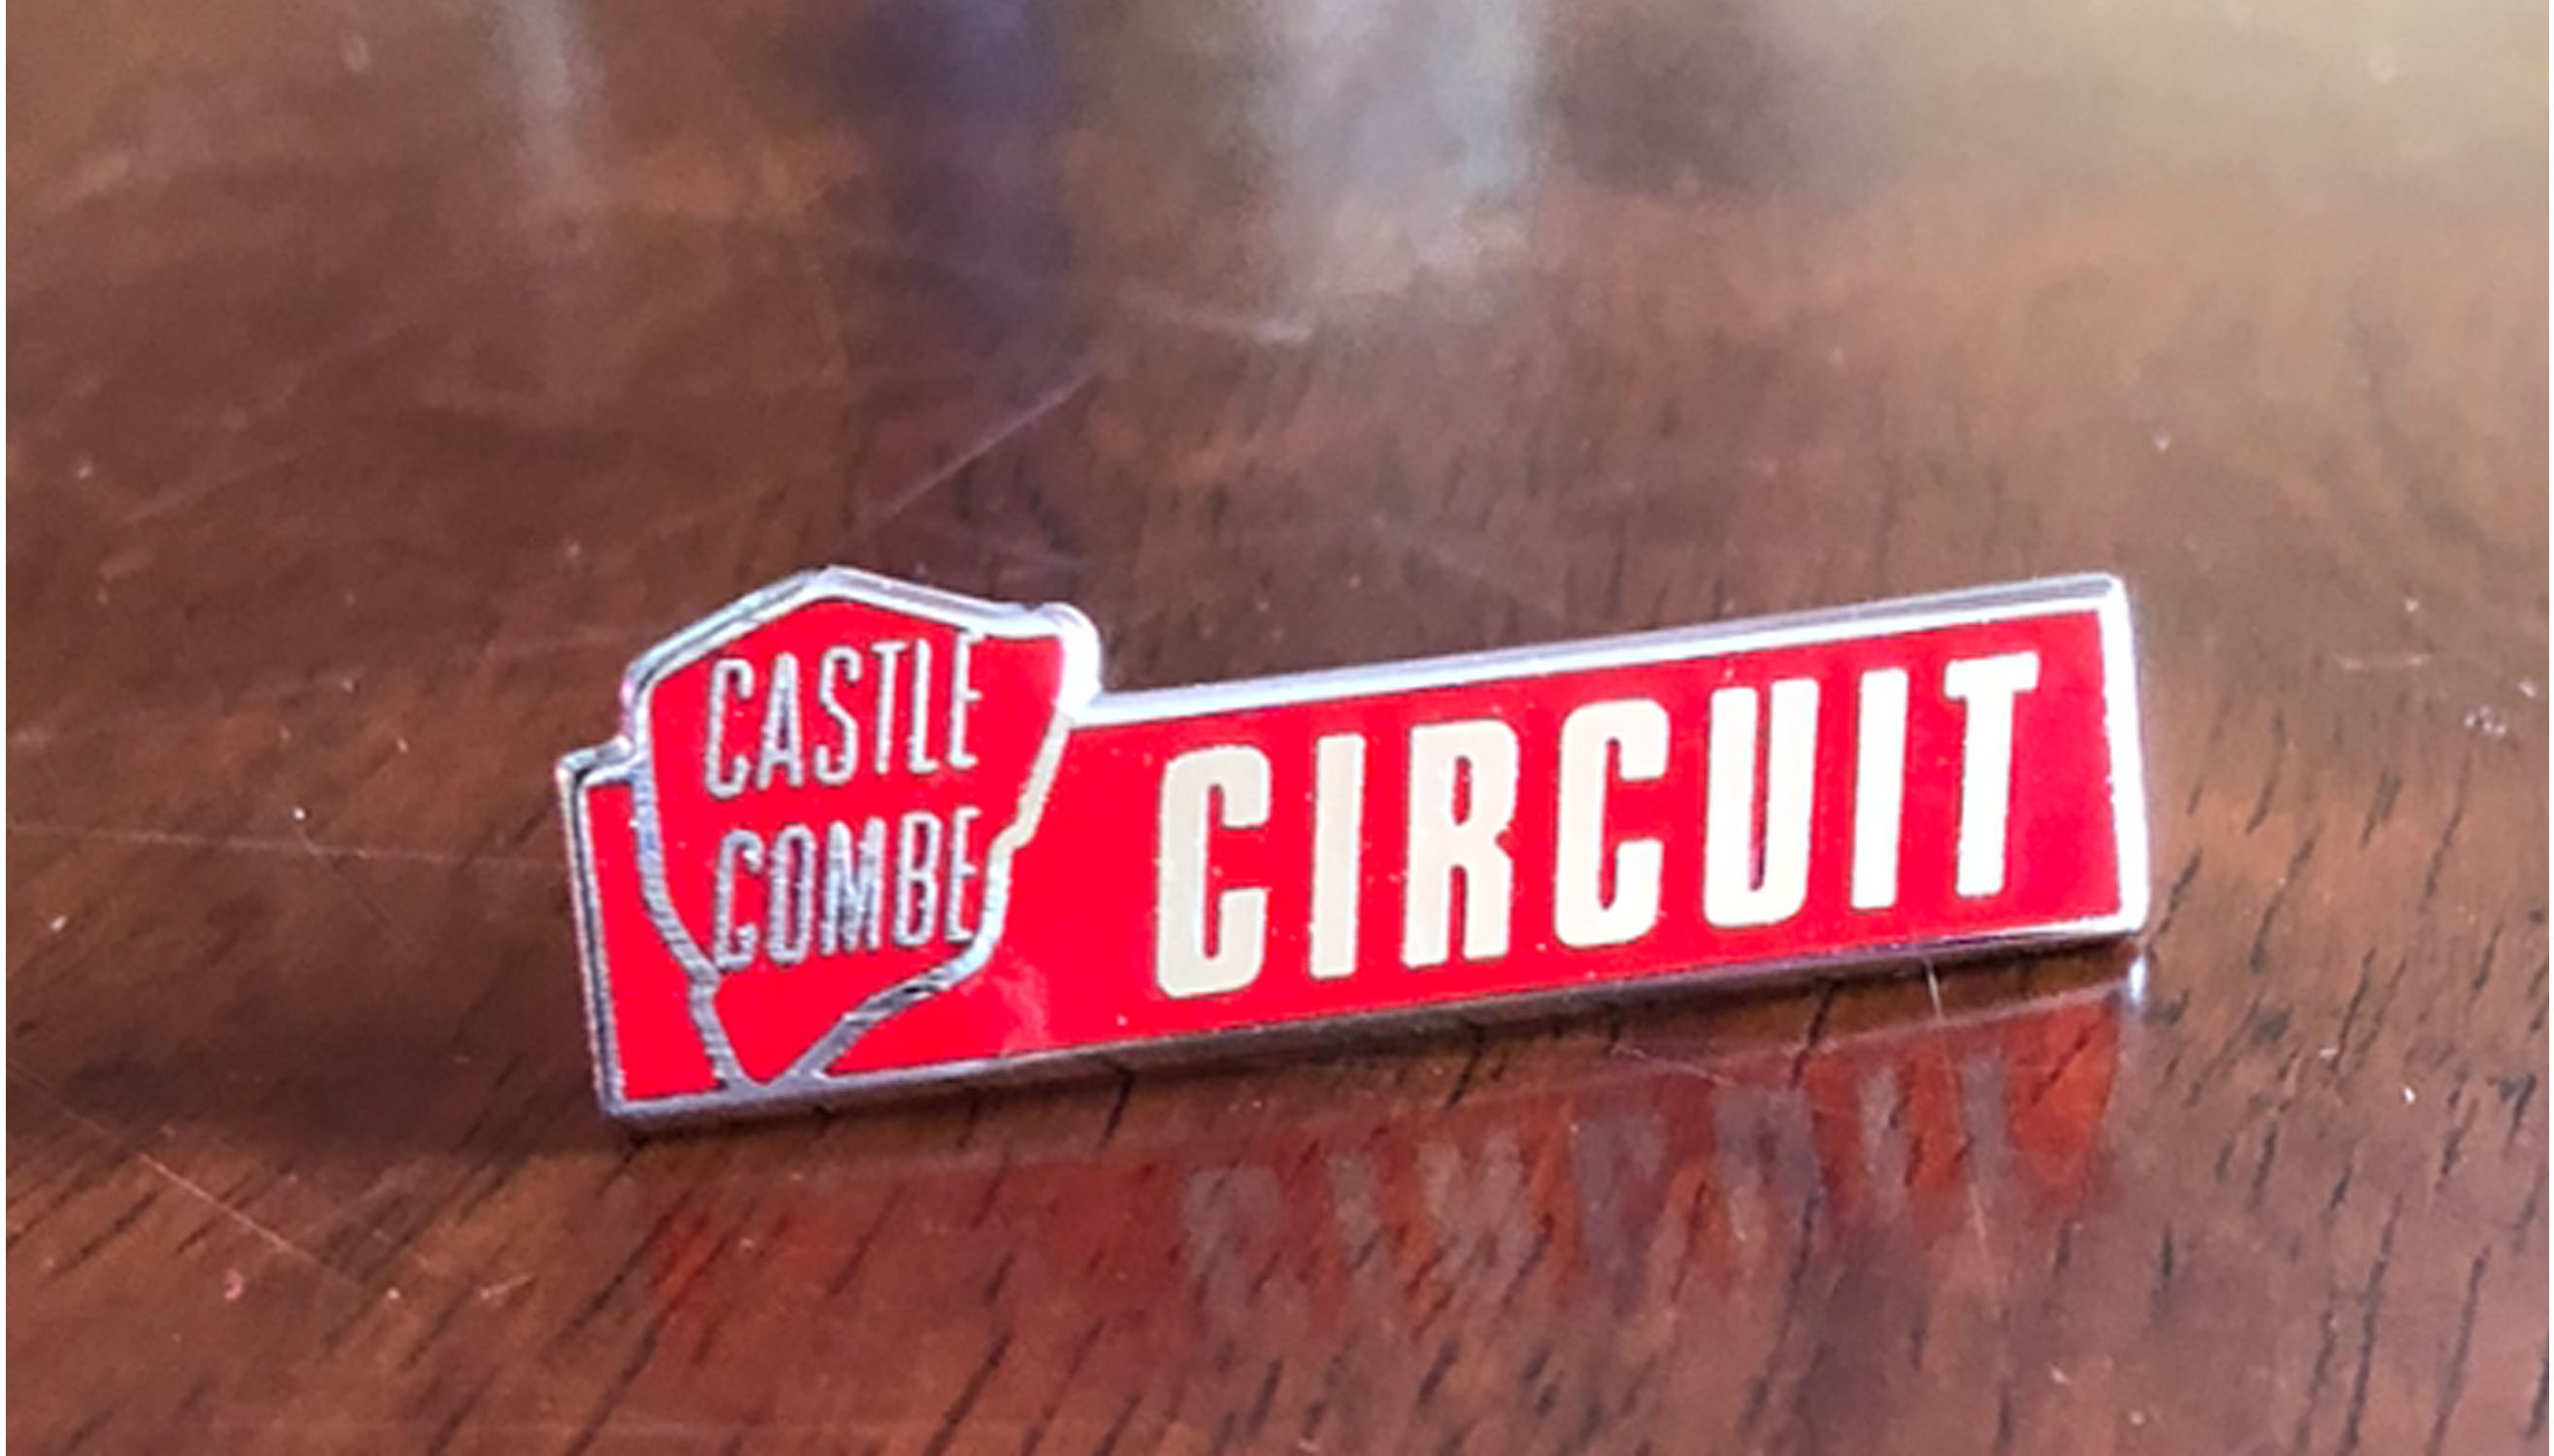 Castle Combe Circuit pin badge